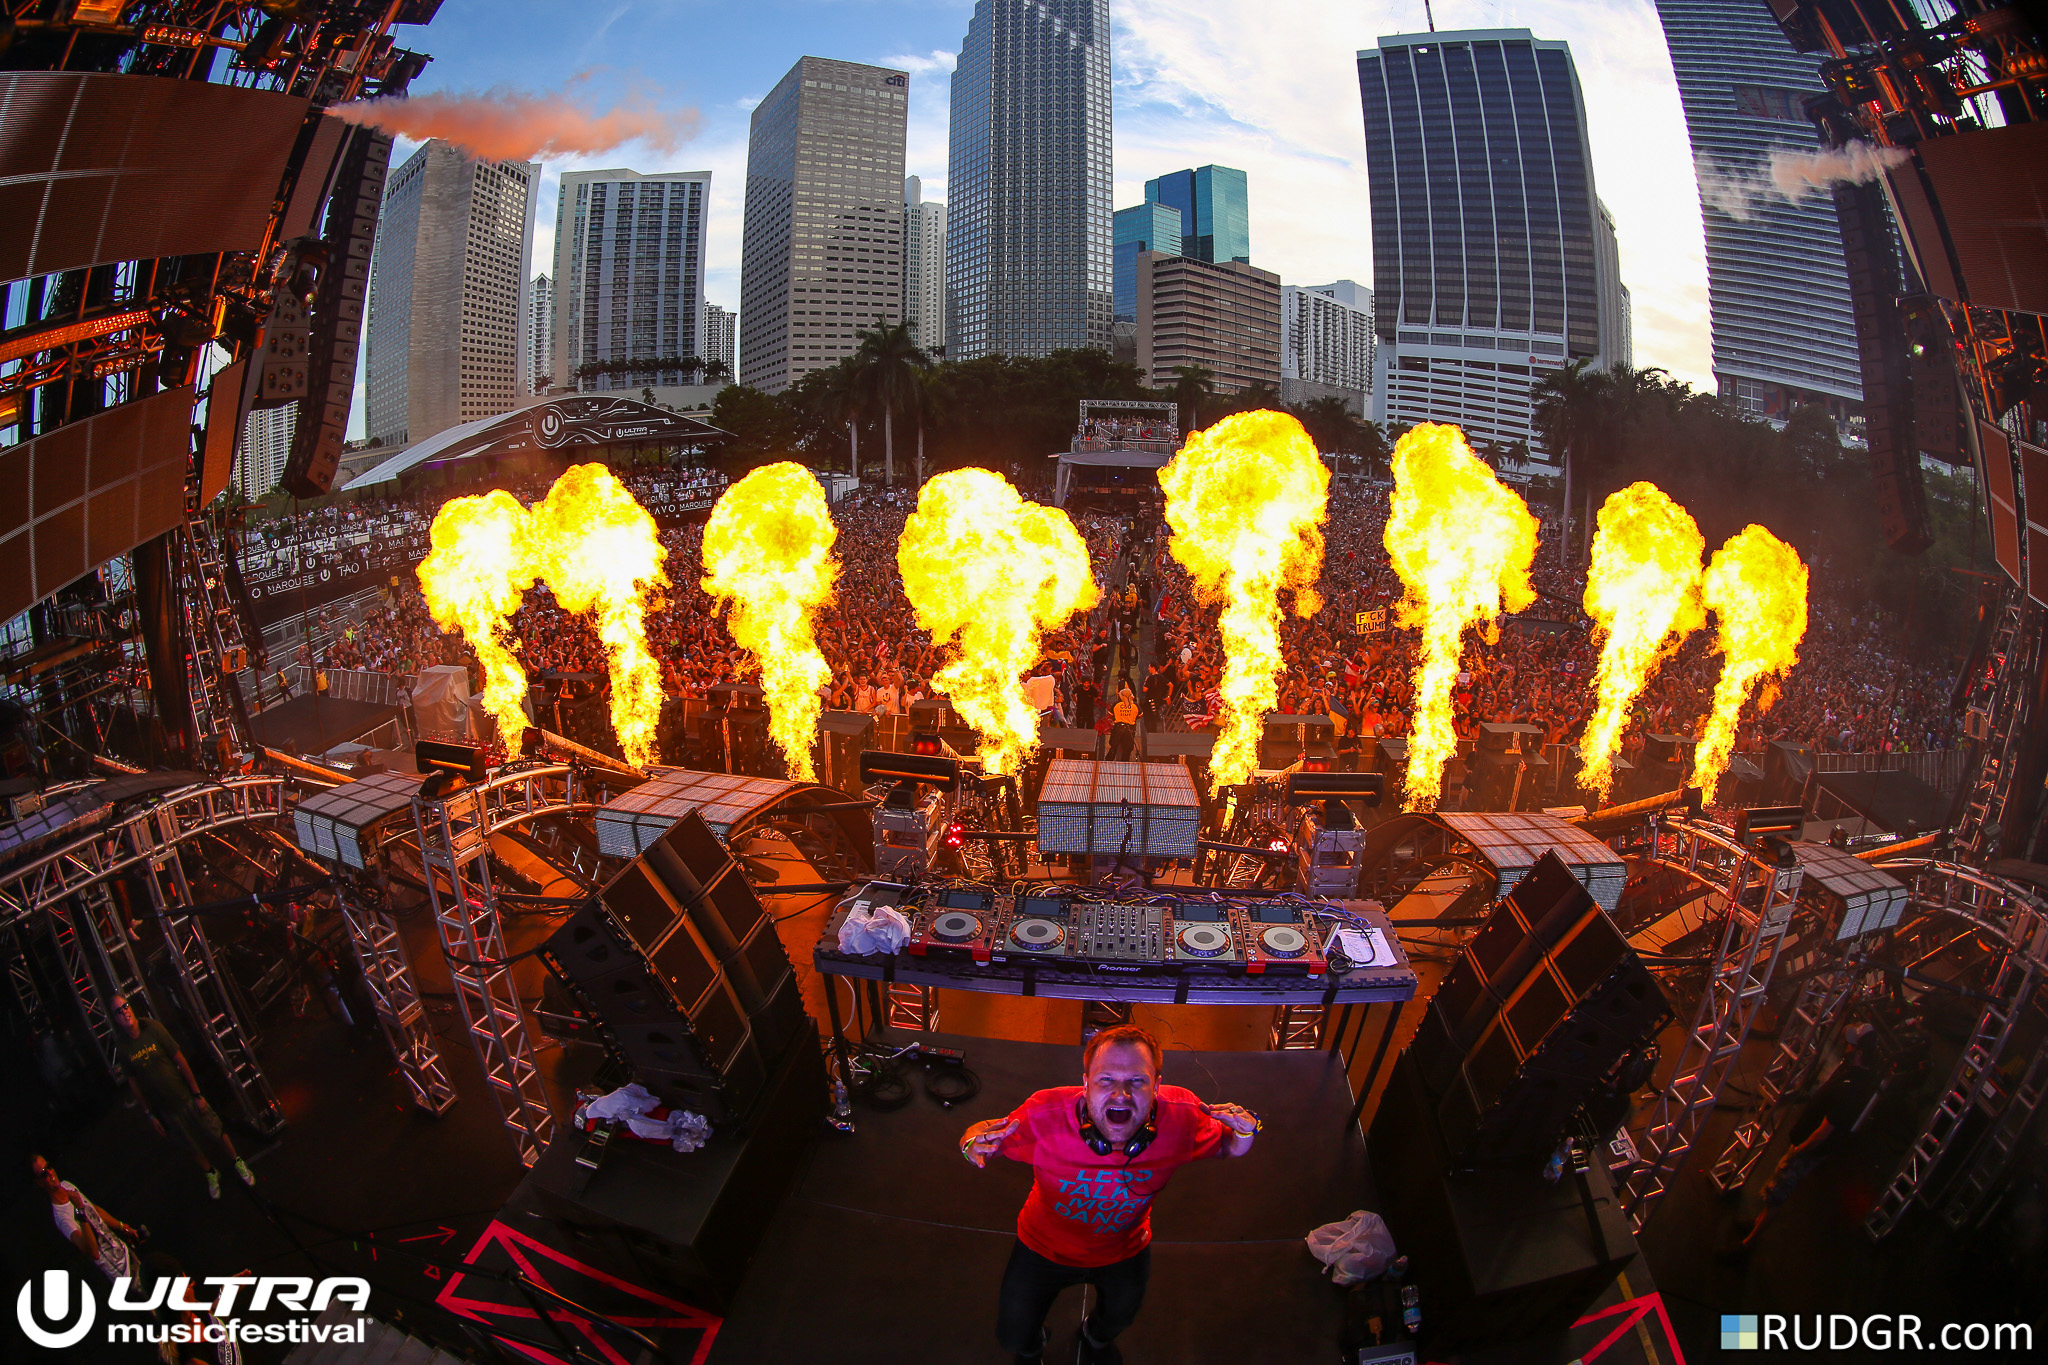 Rudgr for Ultra Music Festival 1